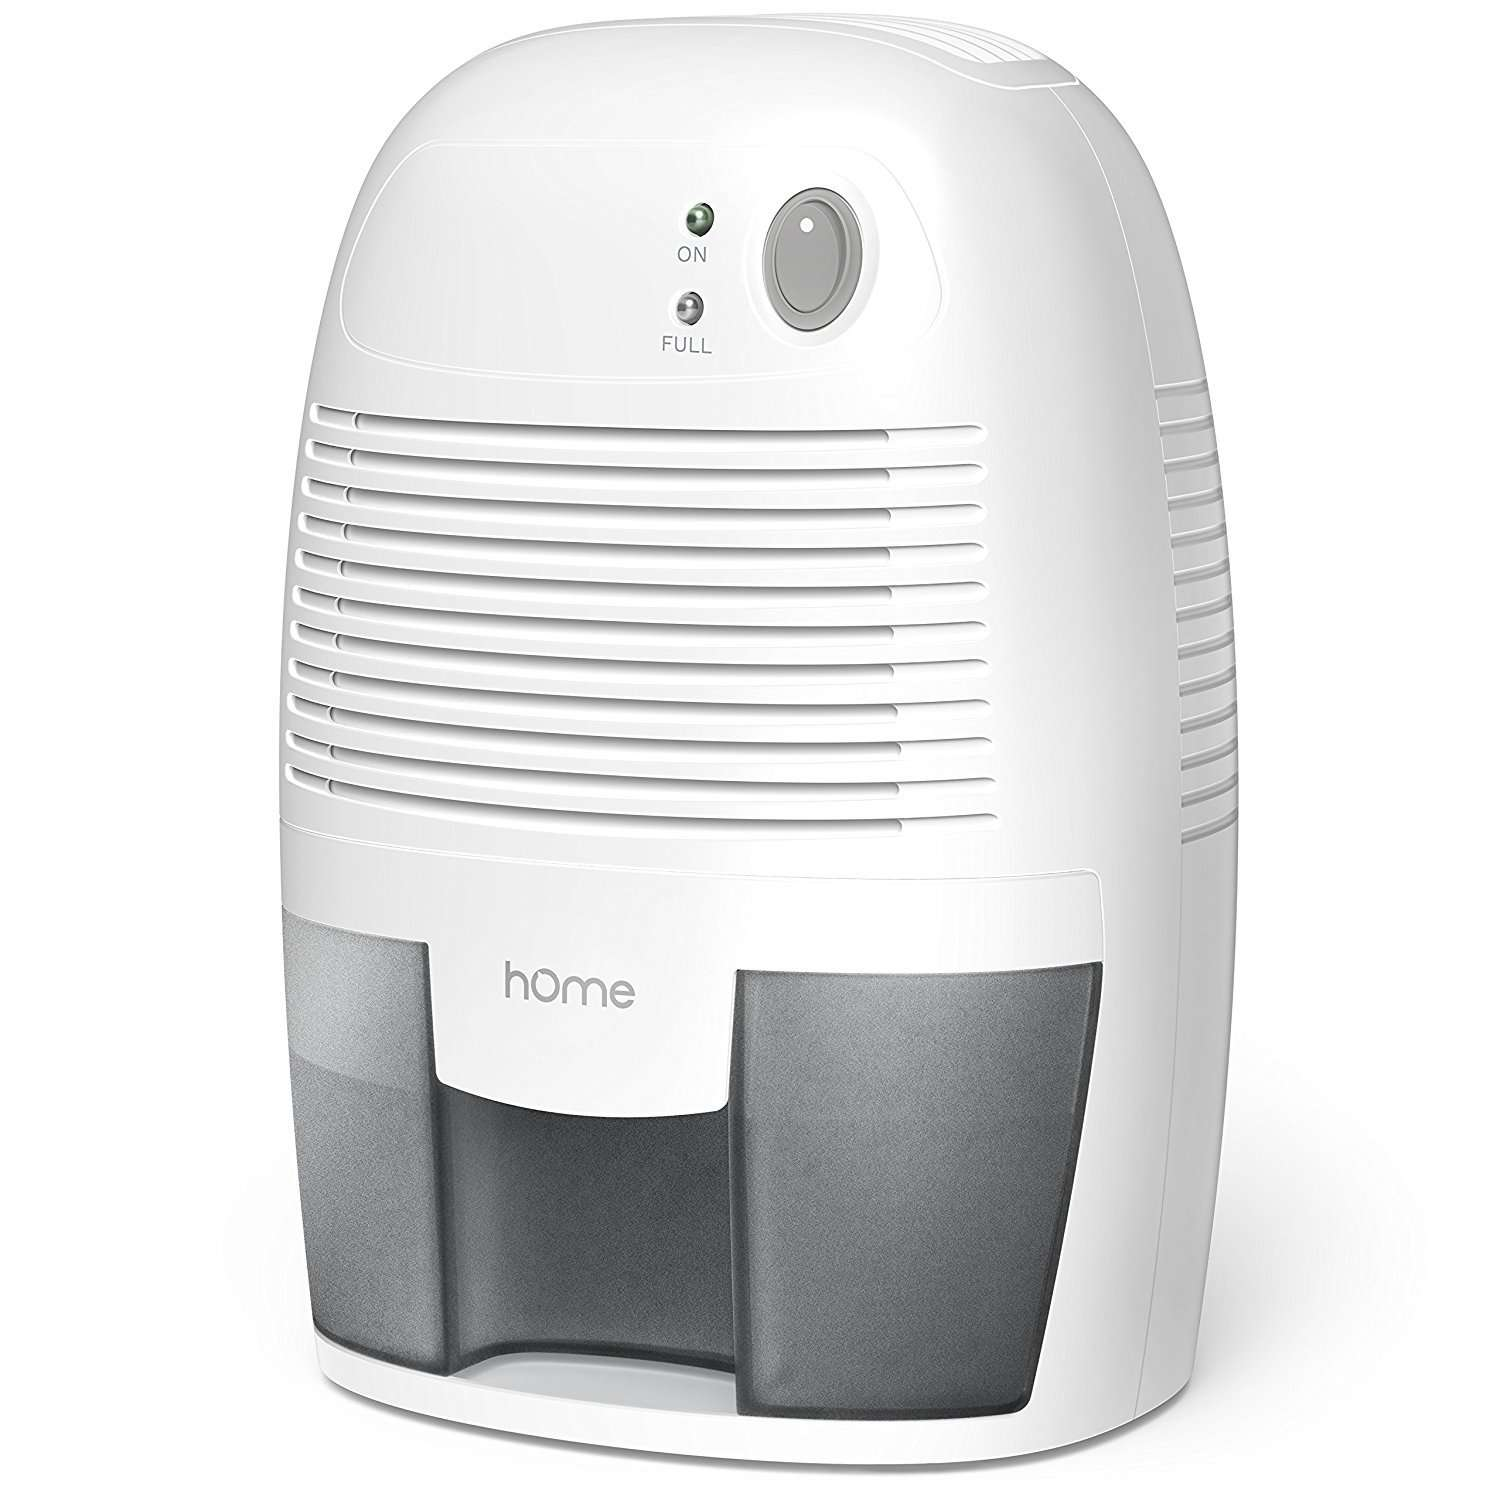 hOmeLabs Small Dehumidifier